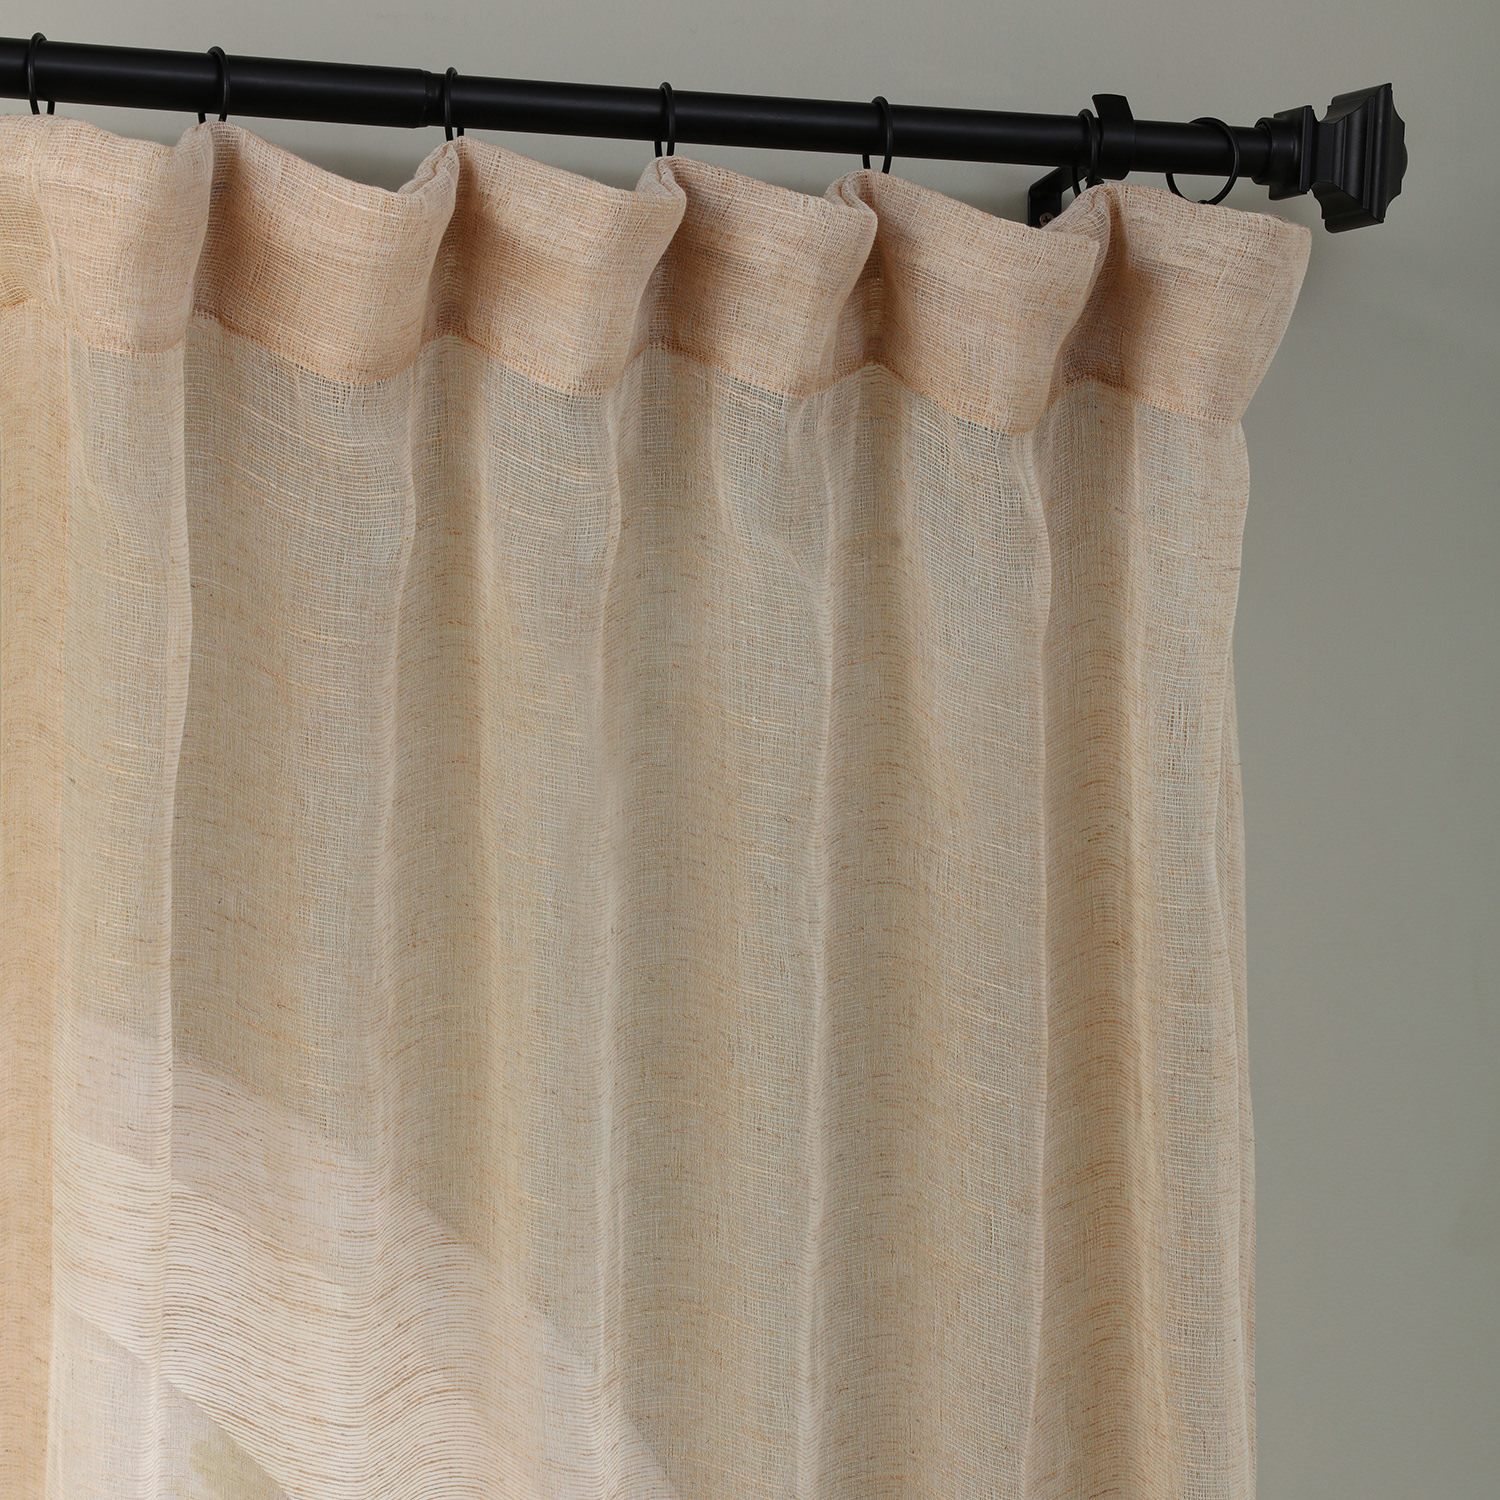 Open Weave Natural Linen Sheer Curtains Amp Drapes